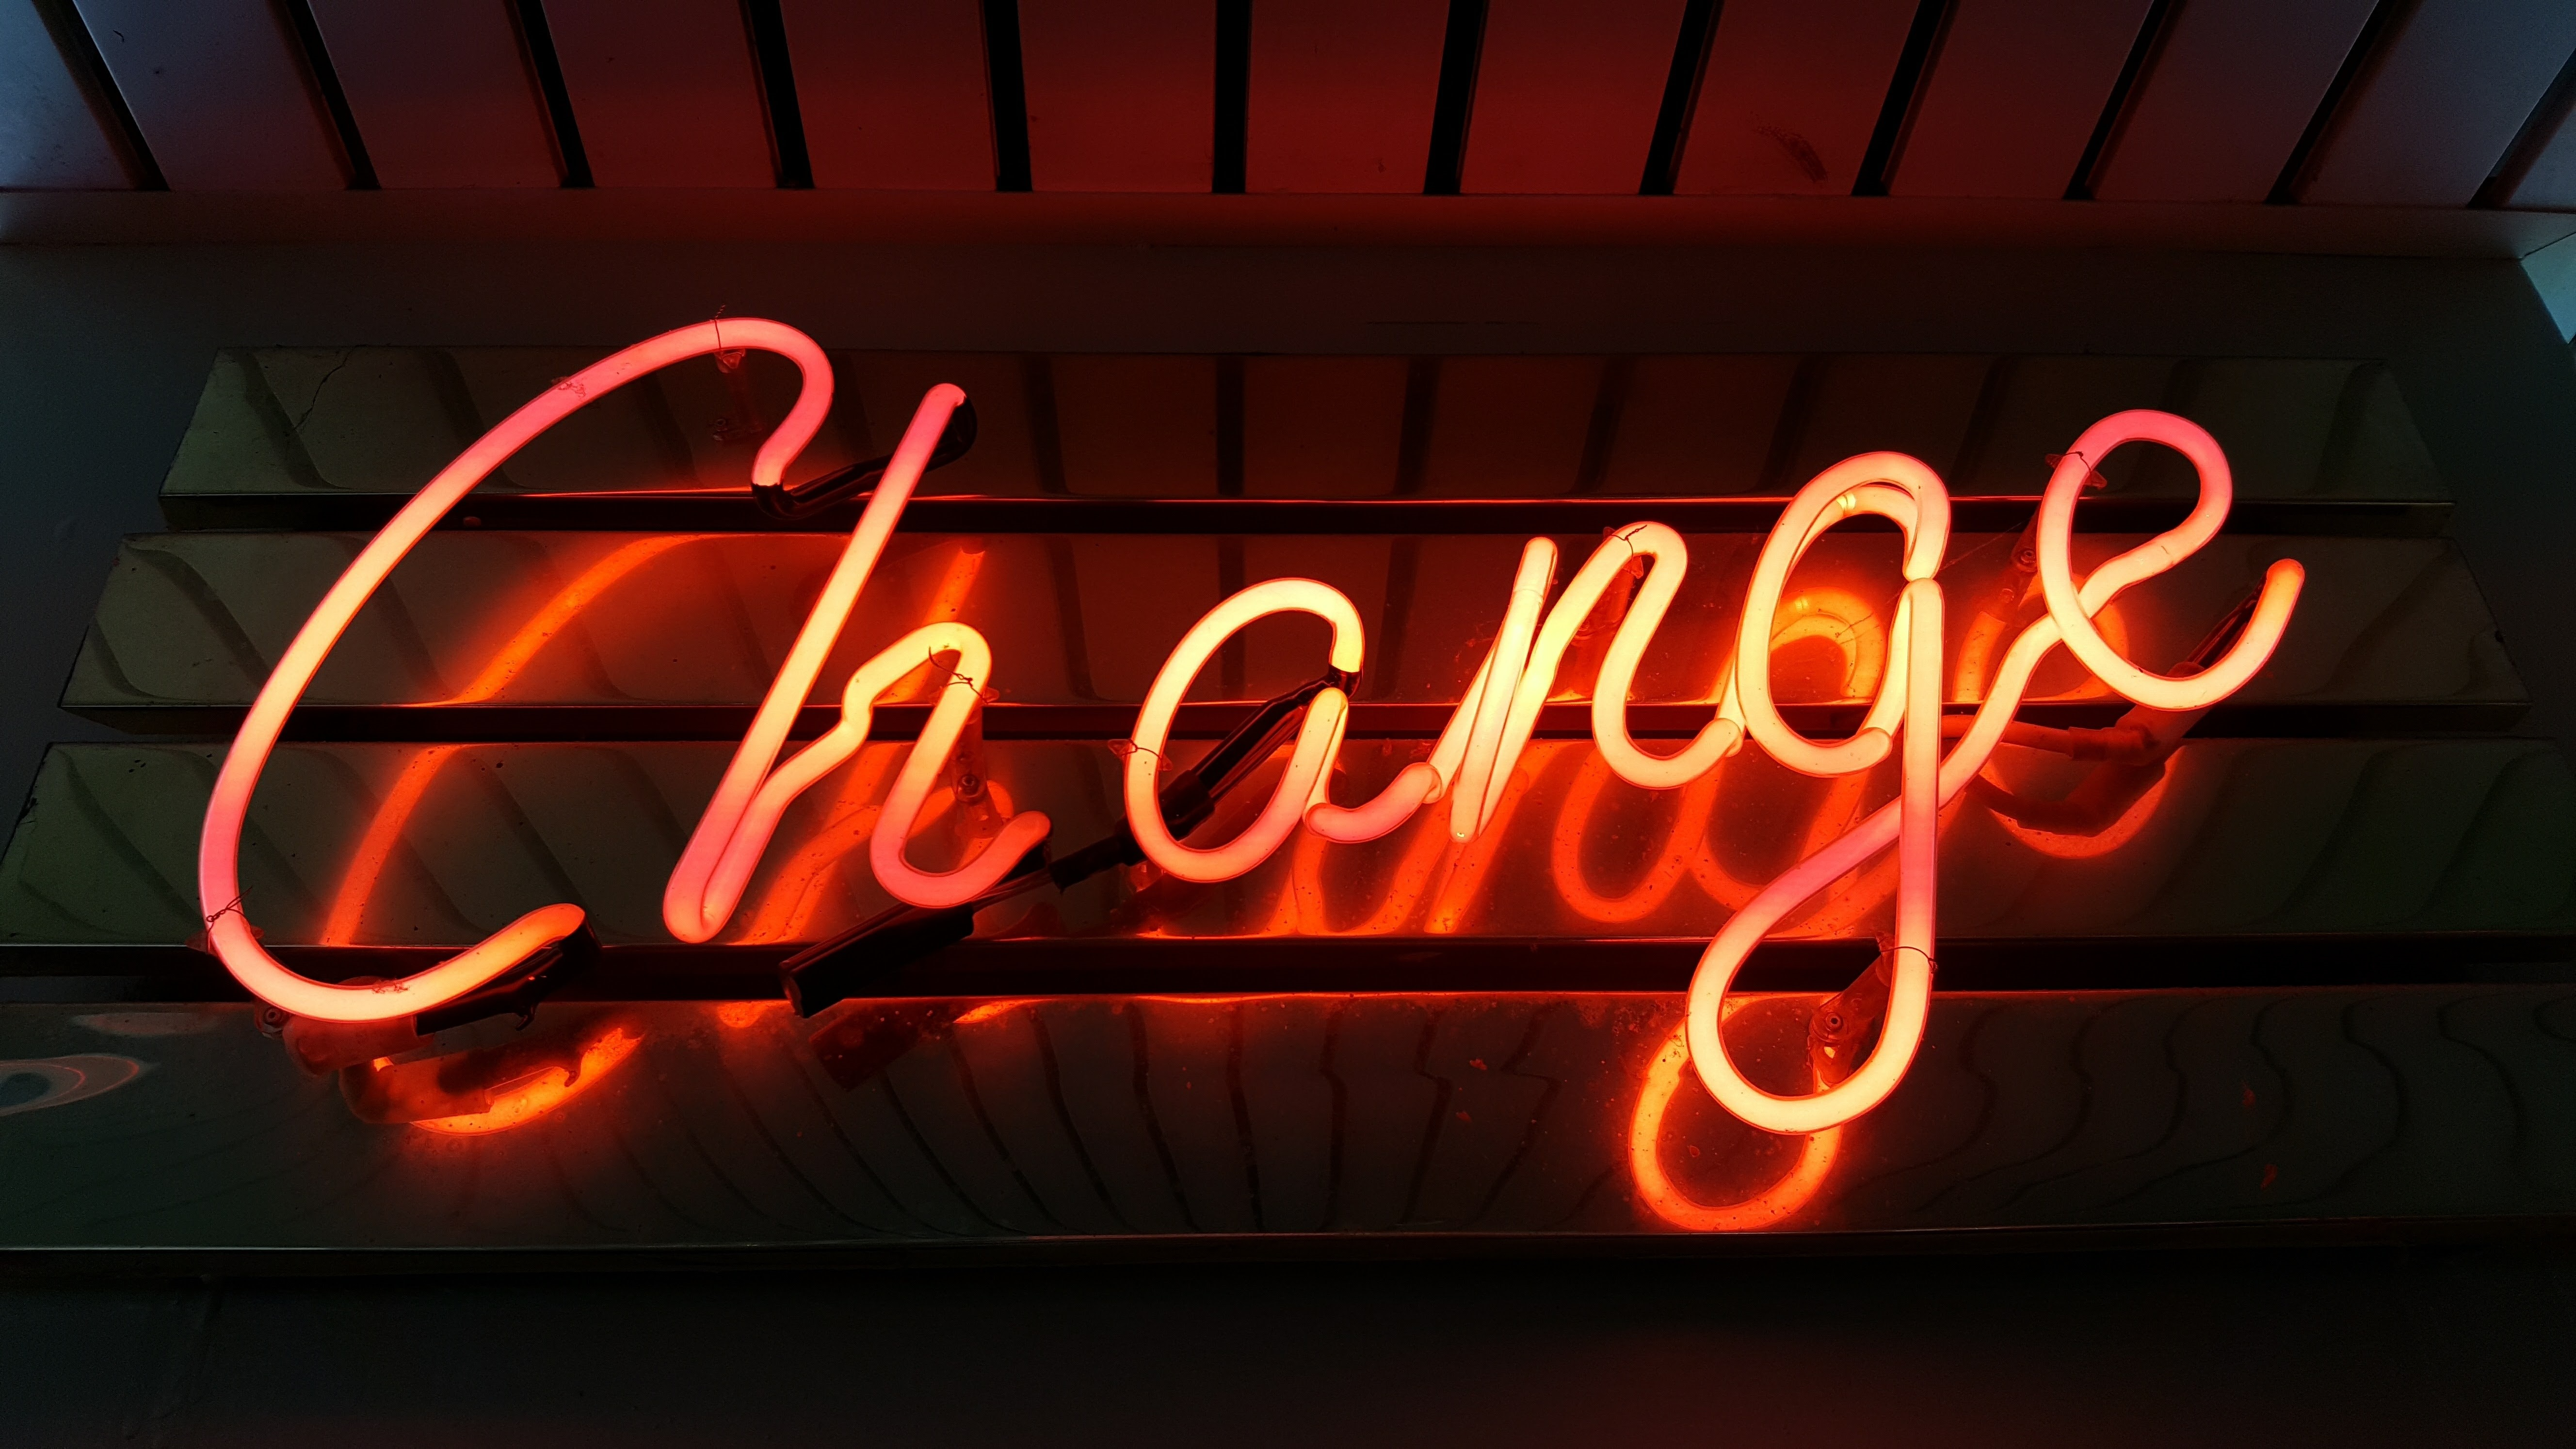 Illuminated fluorescent tube spelling the word Change on a slatted metal base.